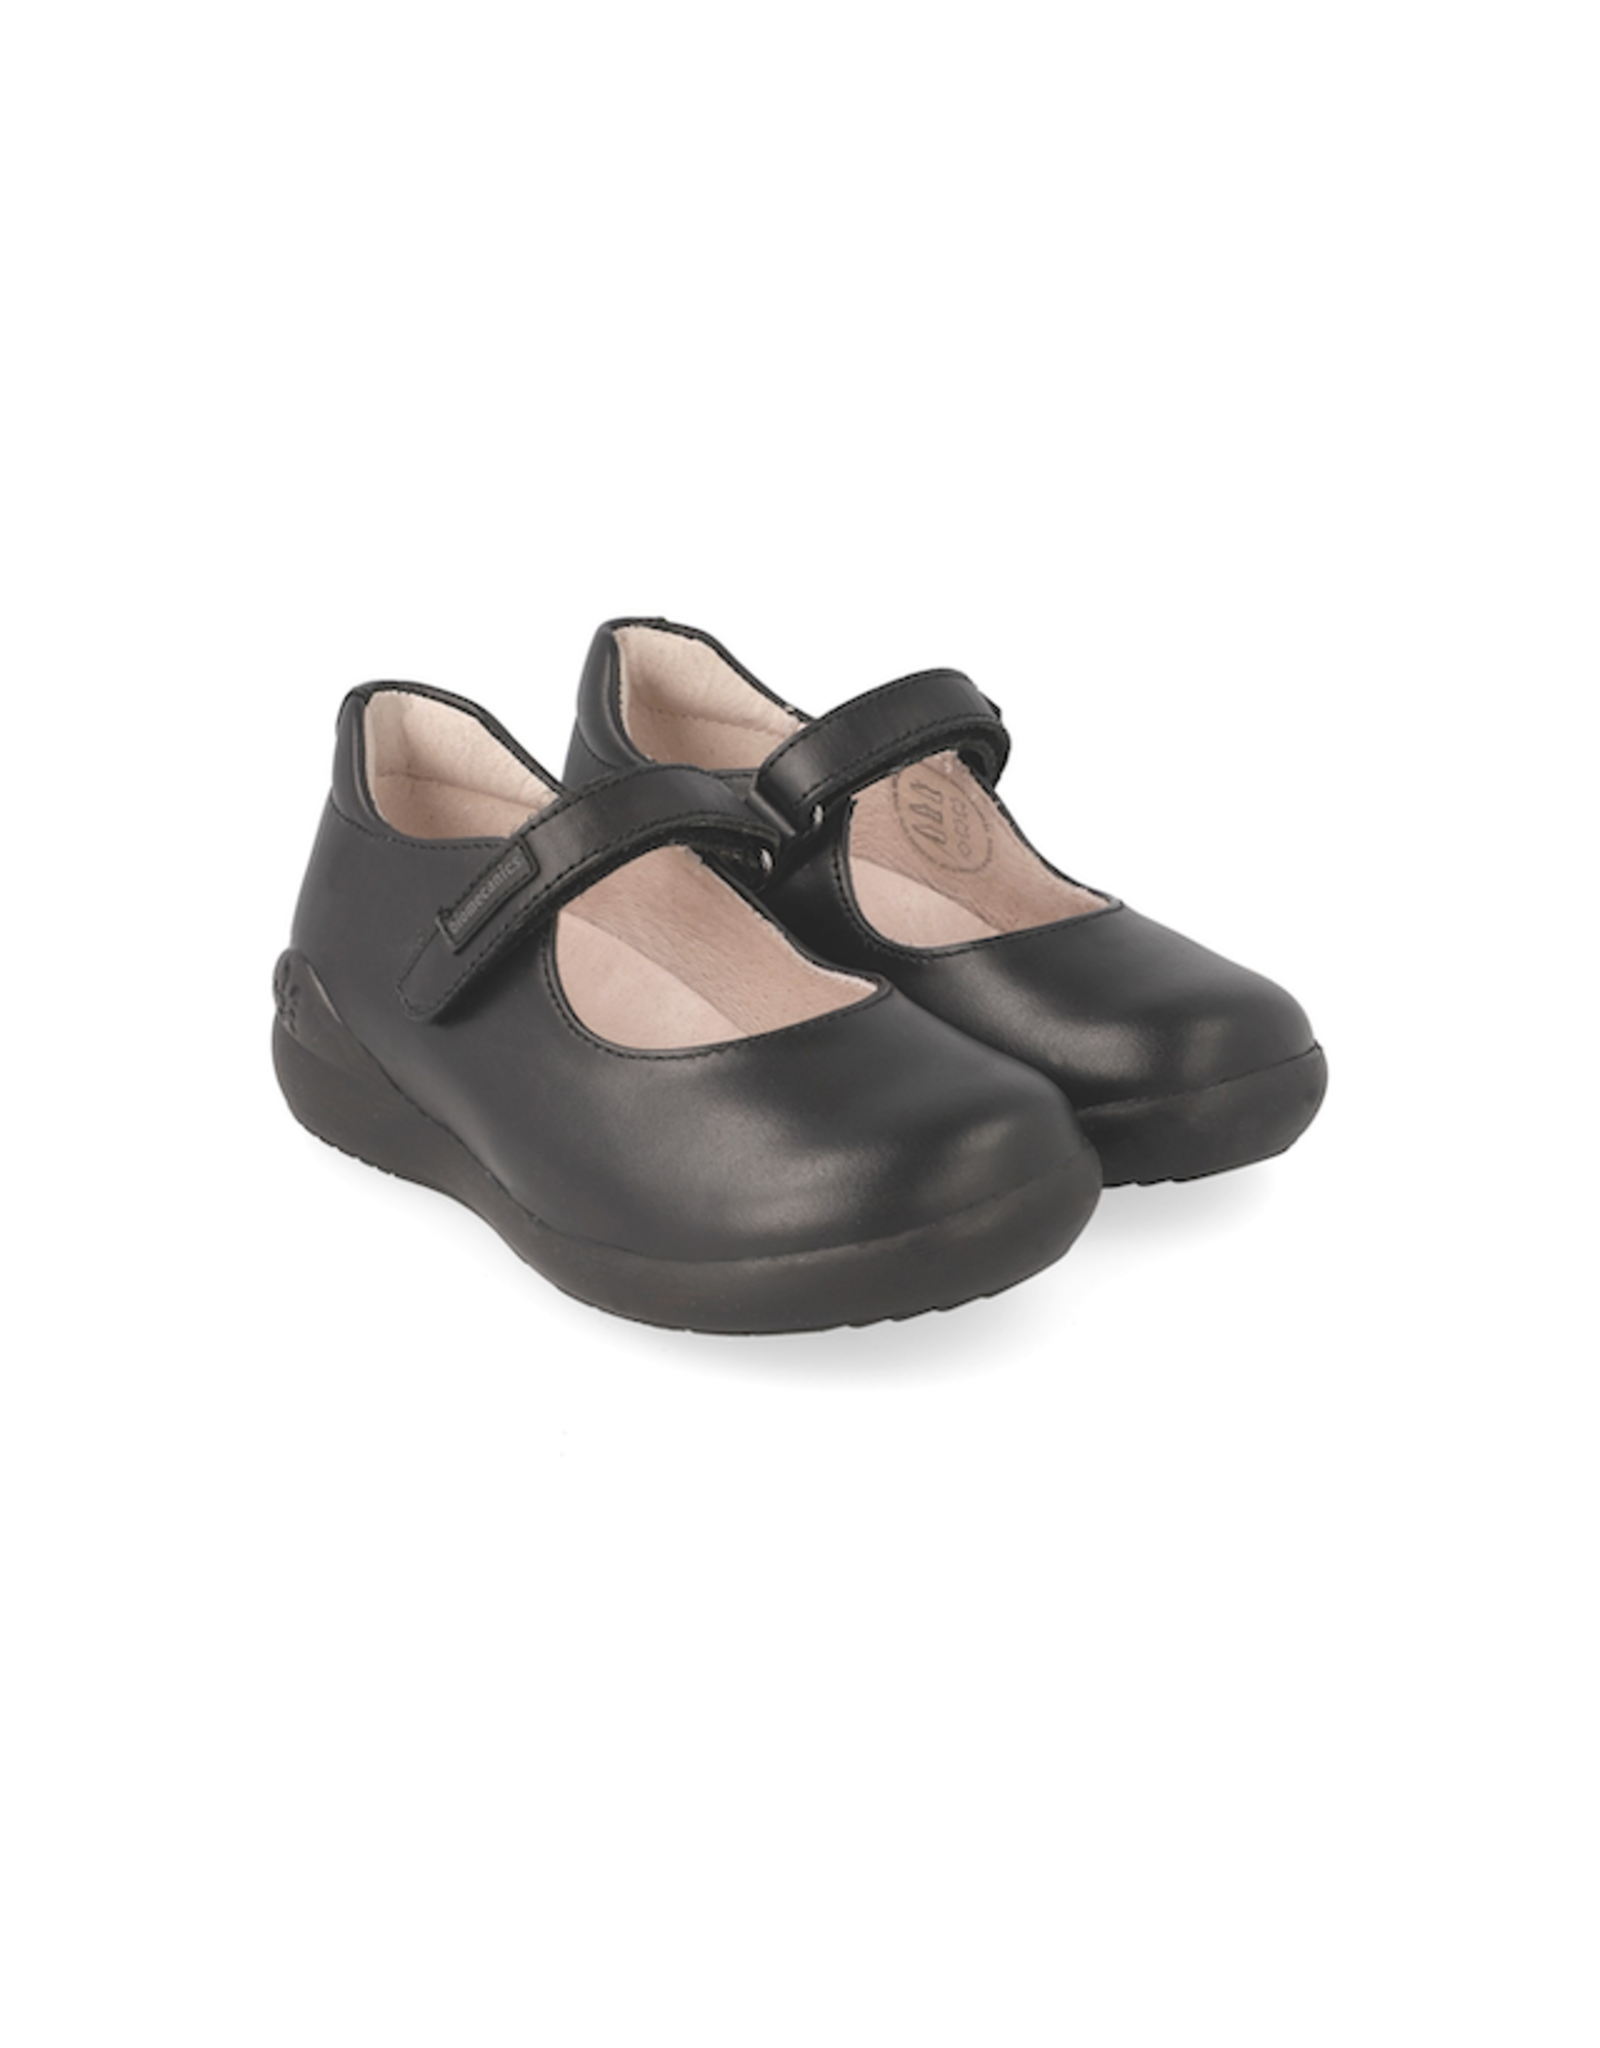 Biomechanics Velcro Mary Jane Uniform Shoes for Girl